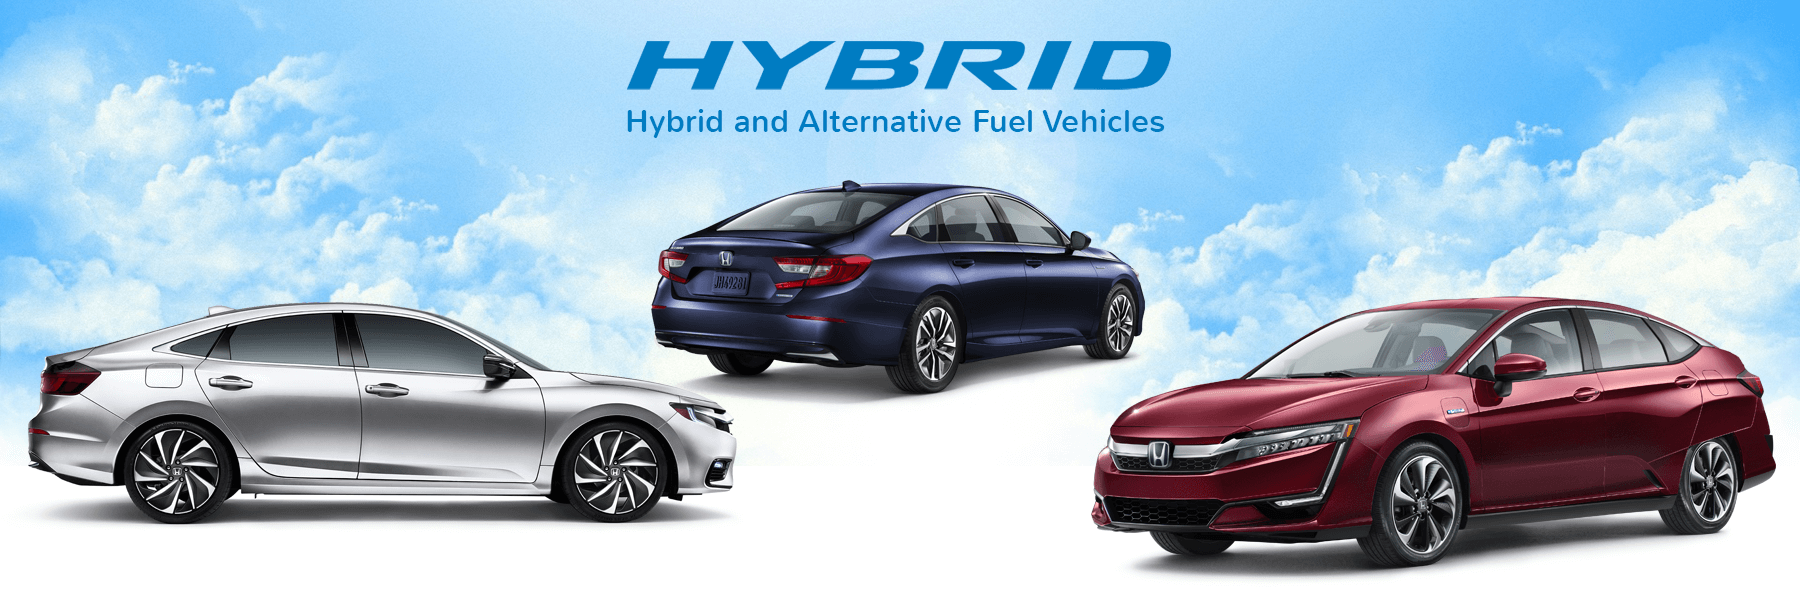 Honda Hybrid and Alternative Fuel Vehicles